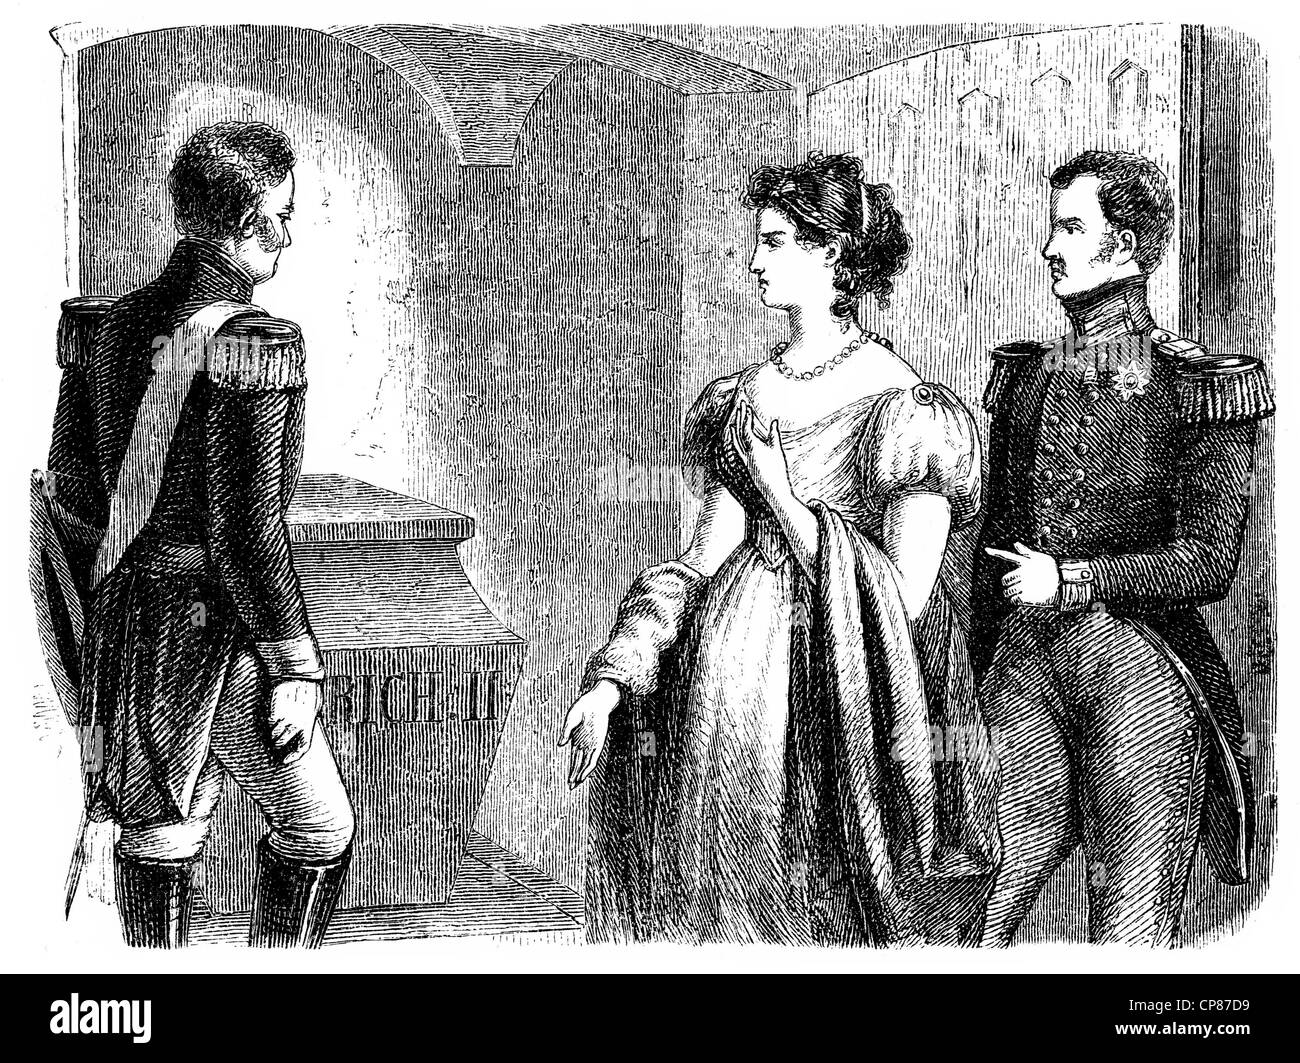 Emperor Alexander, Louise of Prussia and Frederick William III. at the tomb of Frederick the Great, historical engraving, - Stock Image